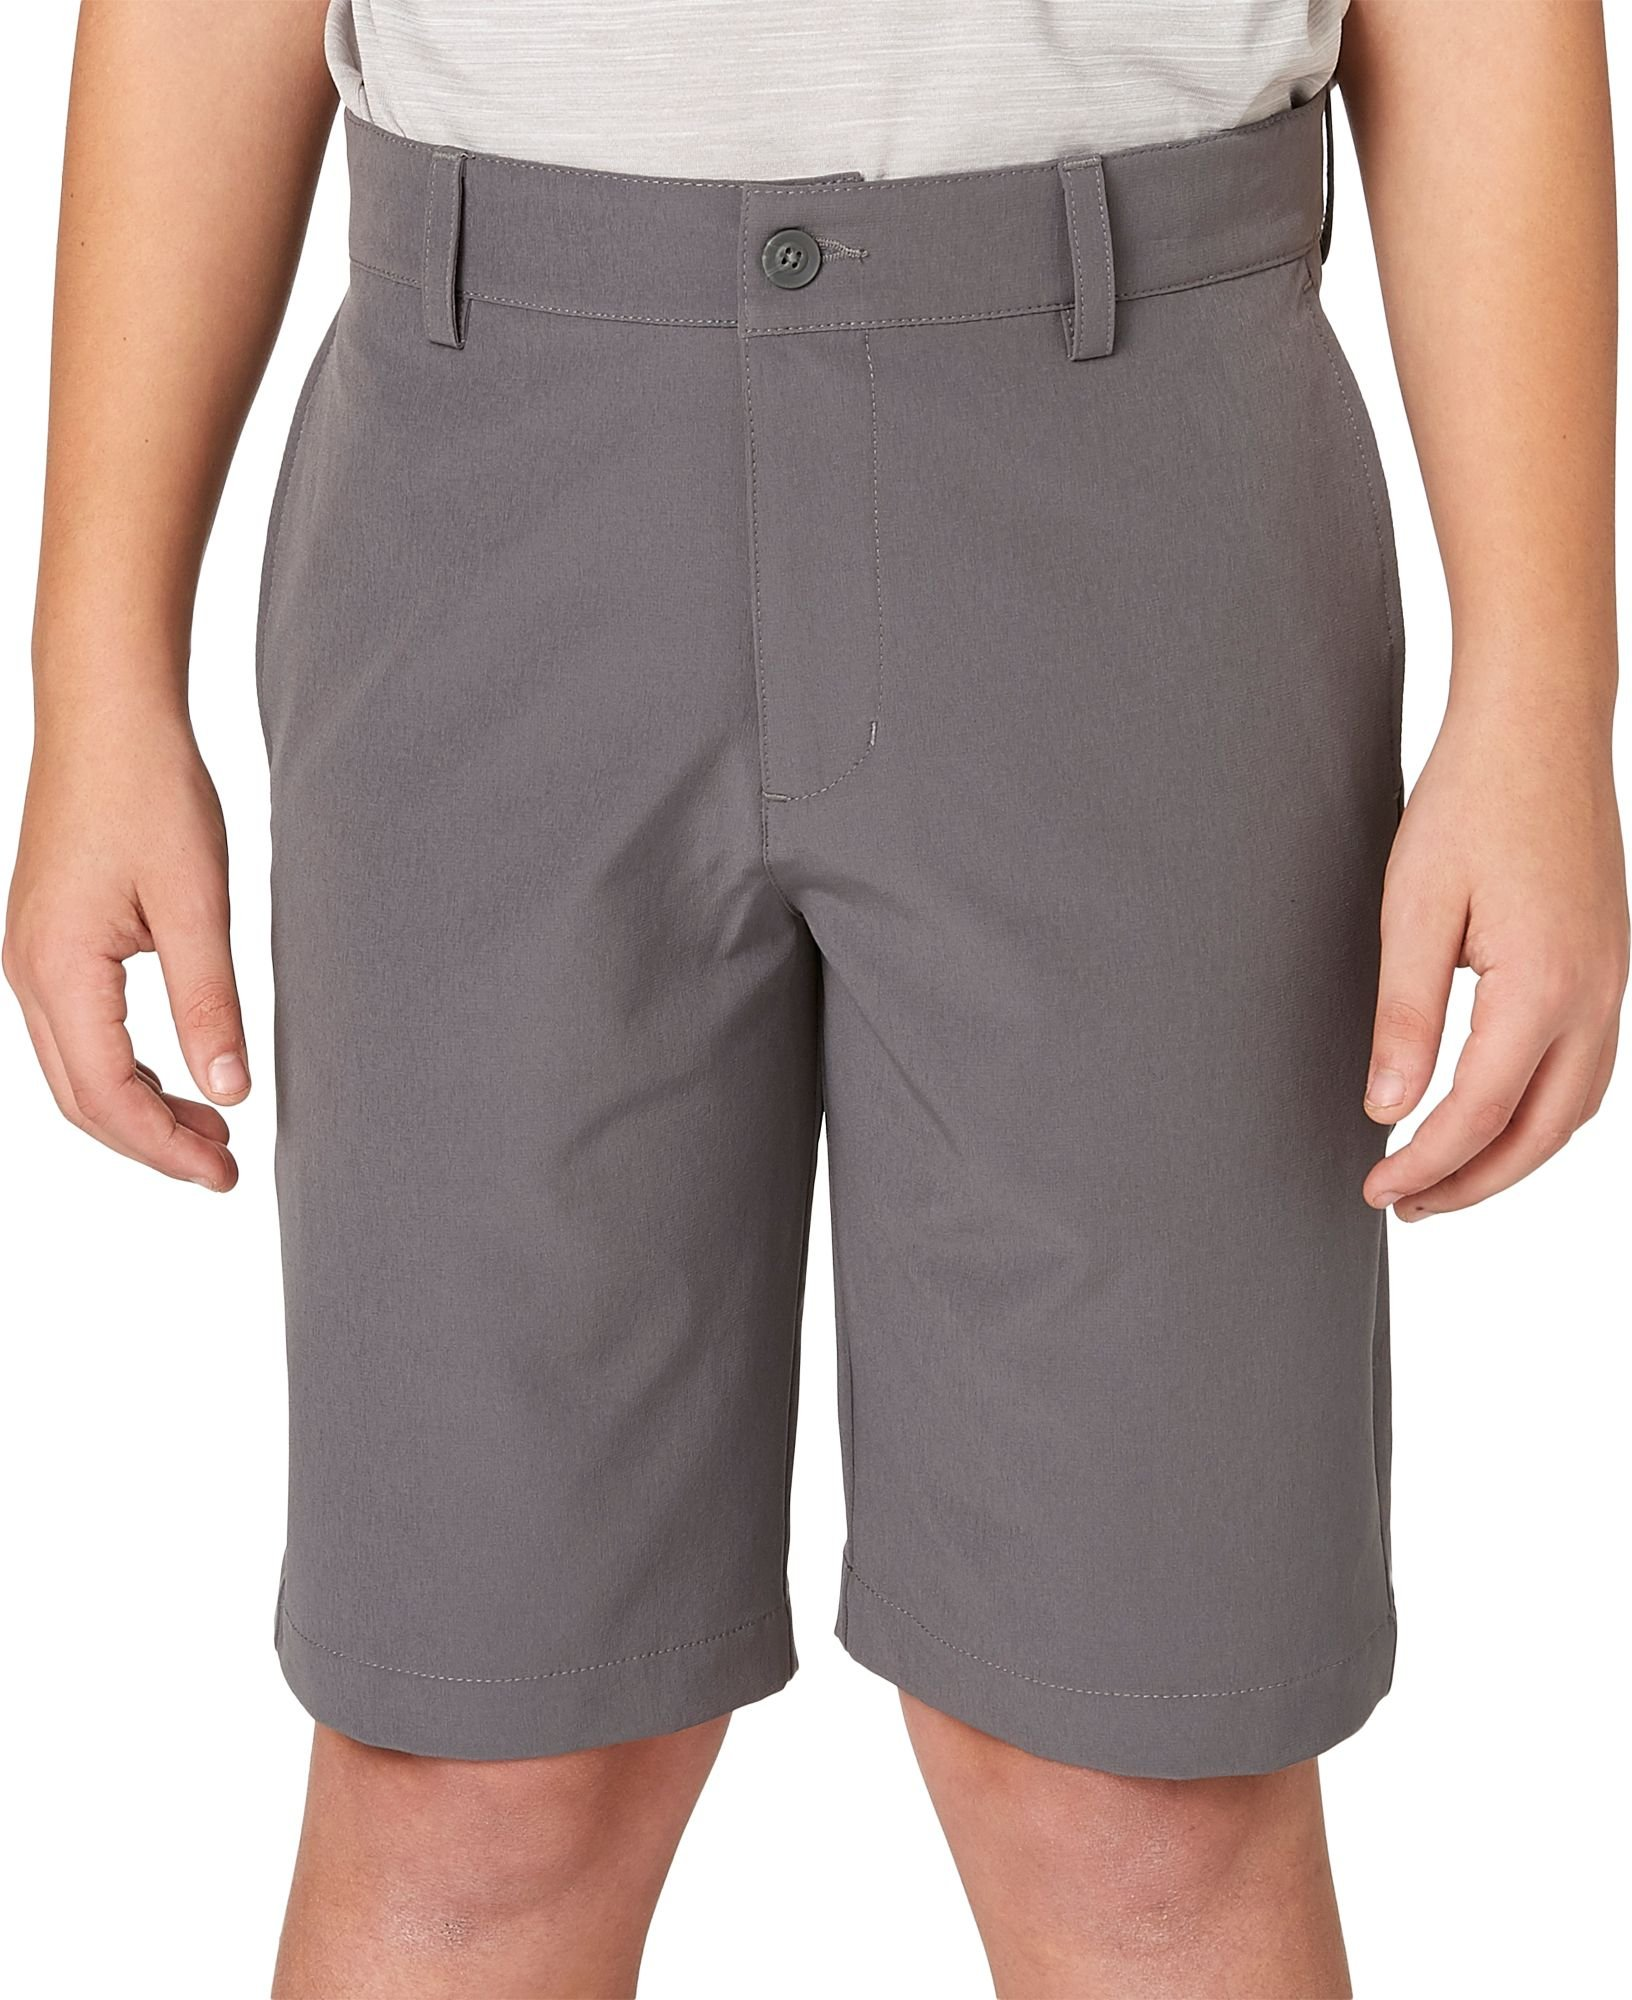 Slazenger Boys' Core Golf Shorts (Grey Castlerock, X-Large)